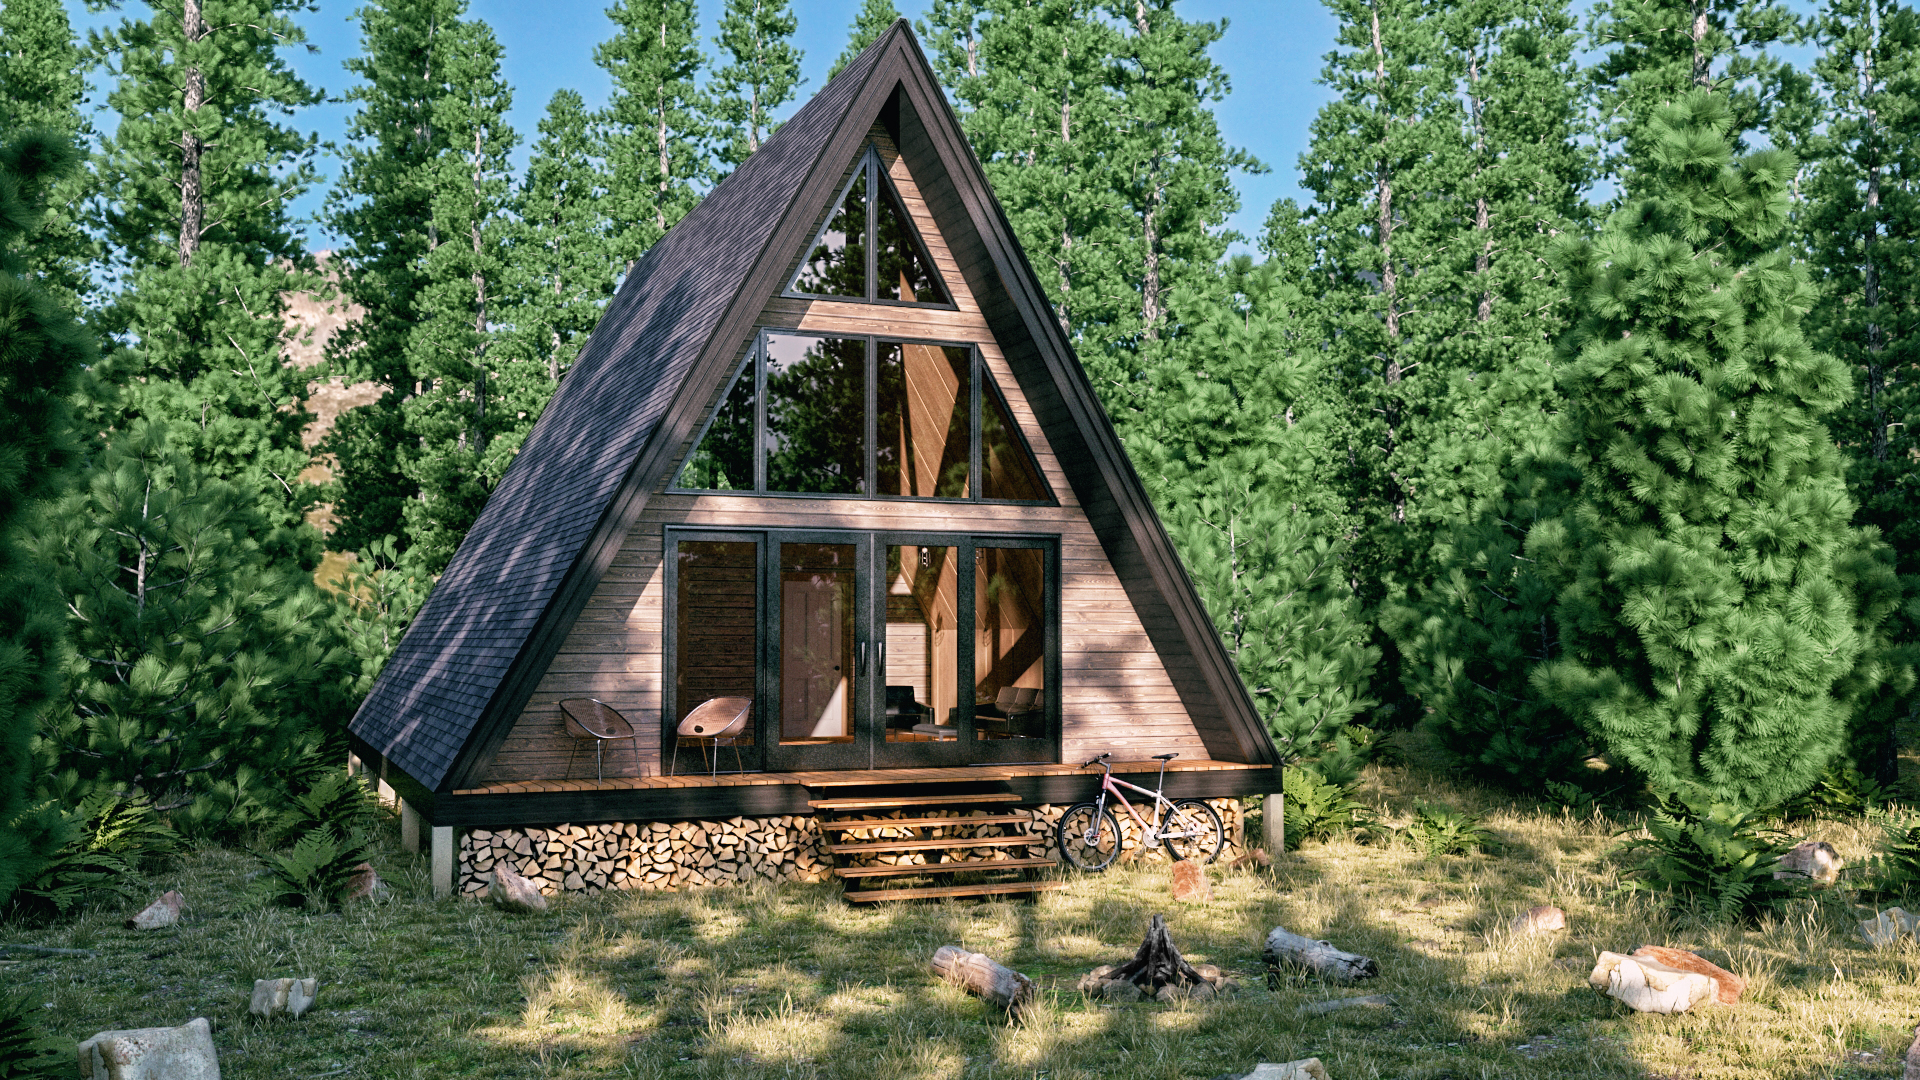 Forest Cabin Day View Final JPG.jpg